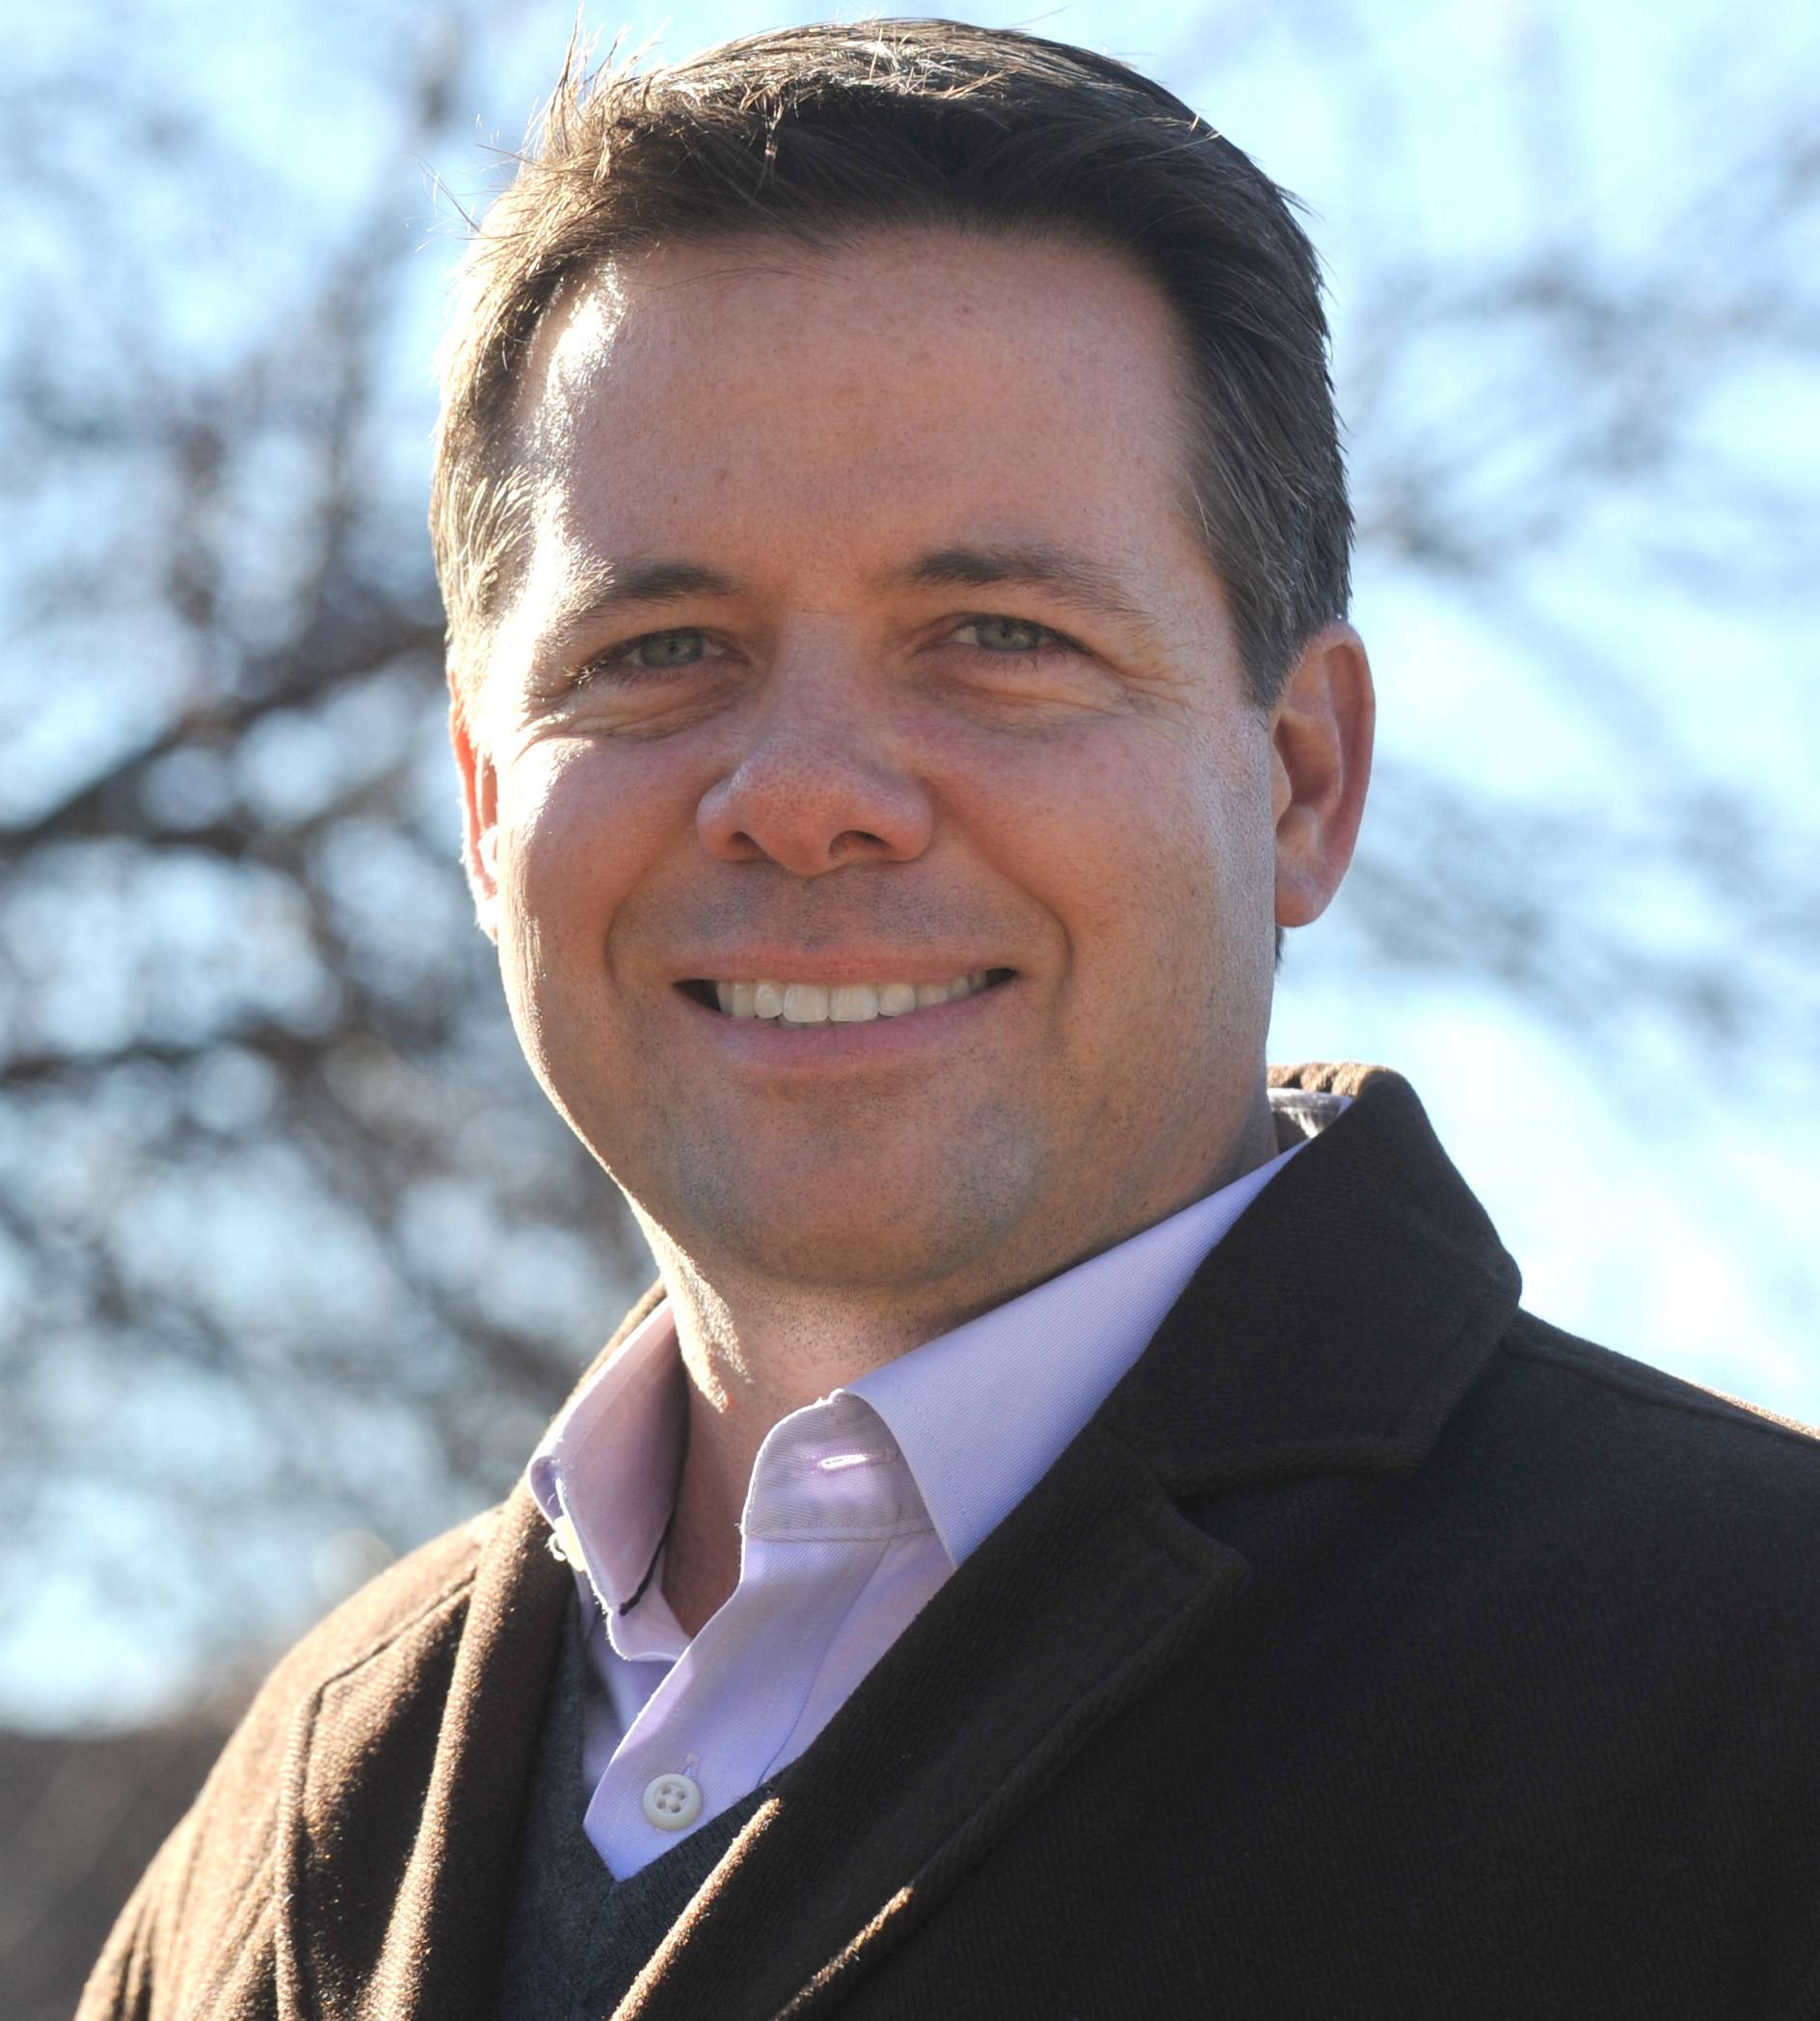 Todd Rusteberg, running for Butler District 53 School Board (4-year Terms)